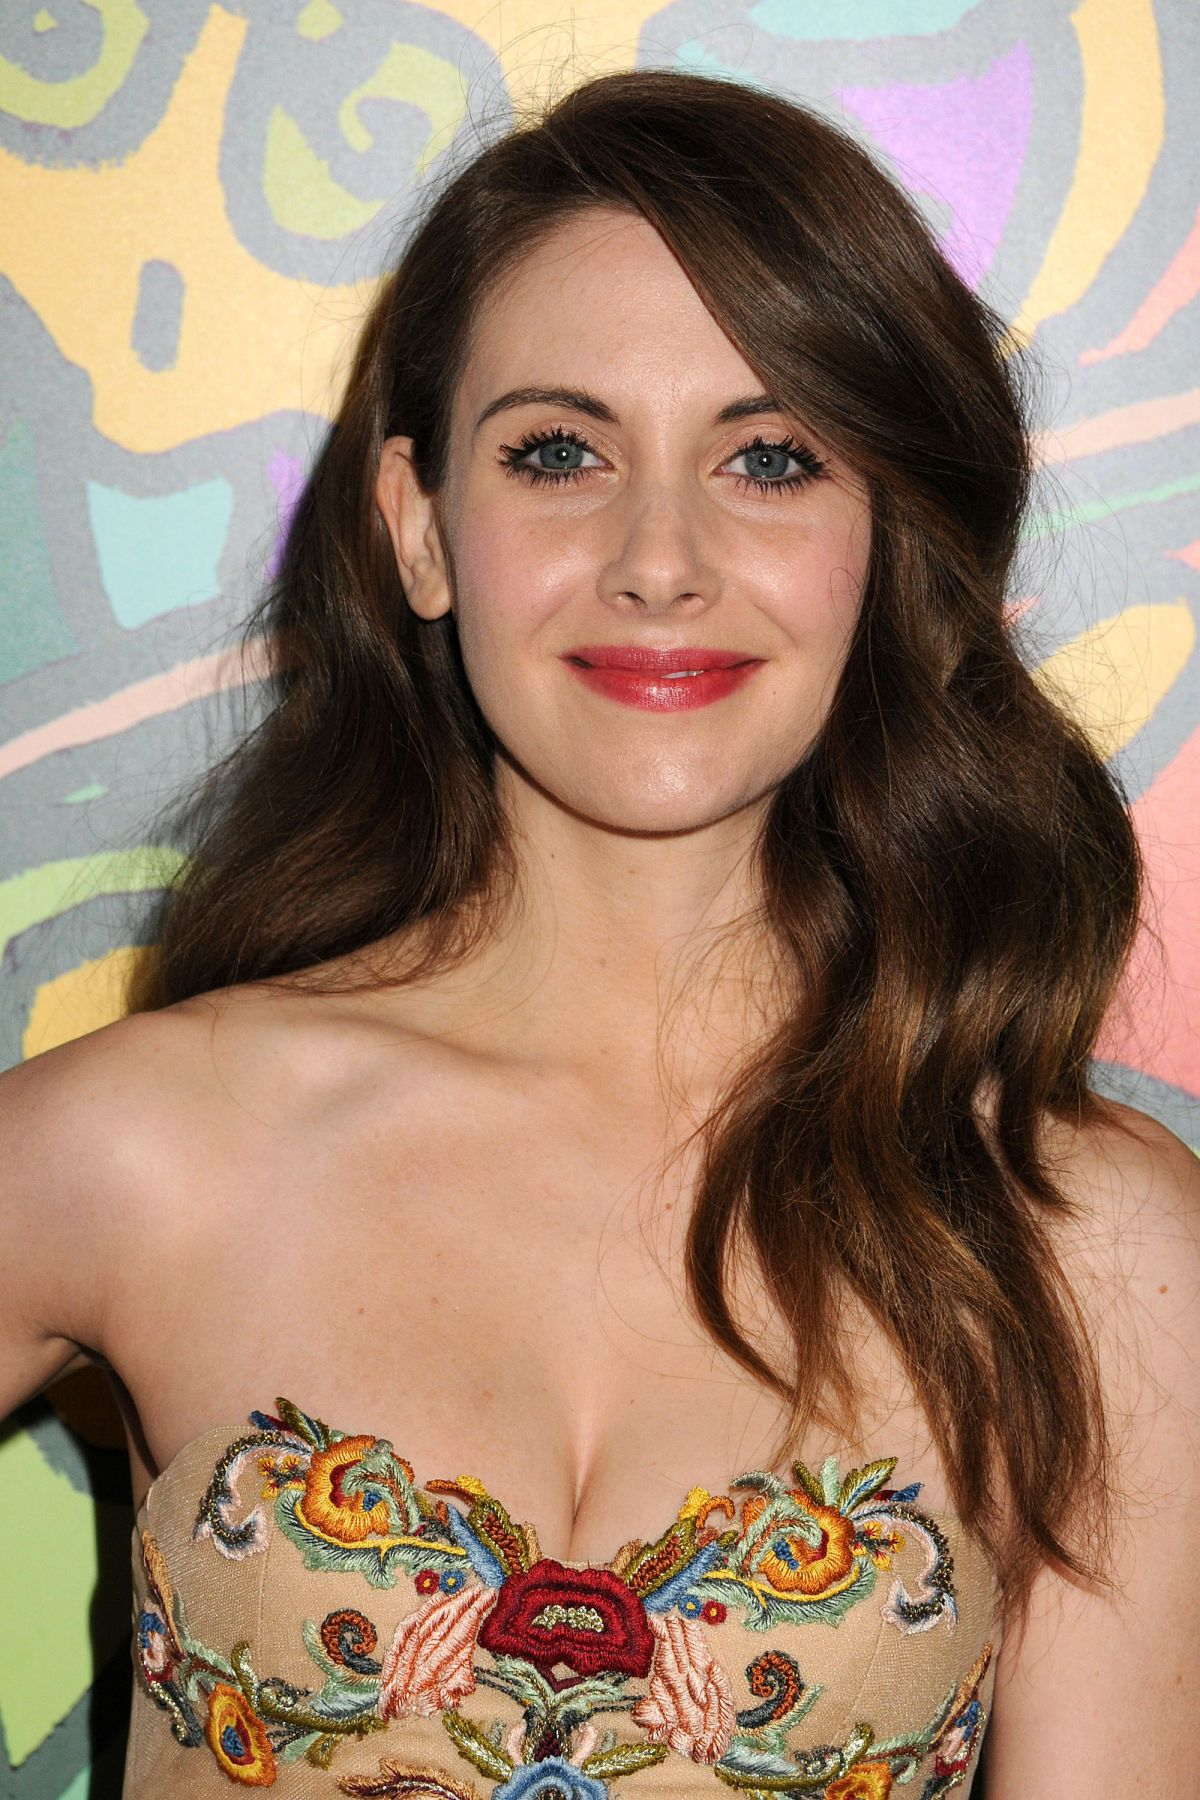 ALISON BRIE at Med Men Season 7 Premiere in Hollywood